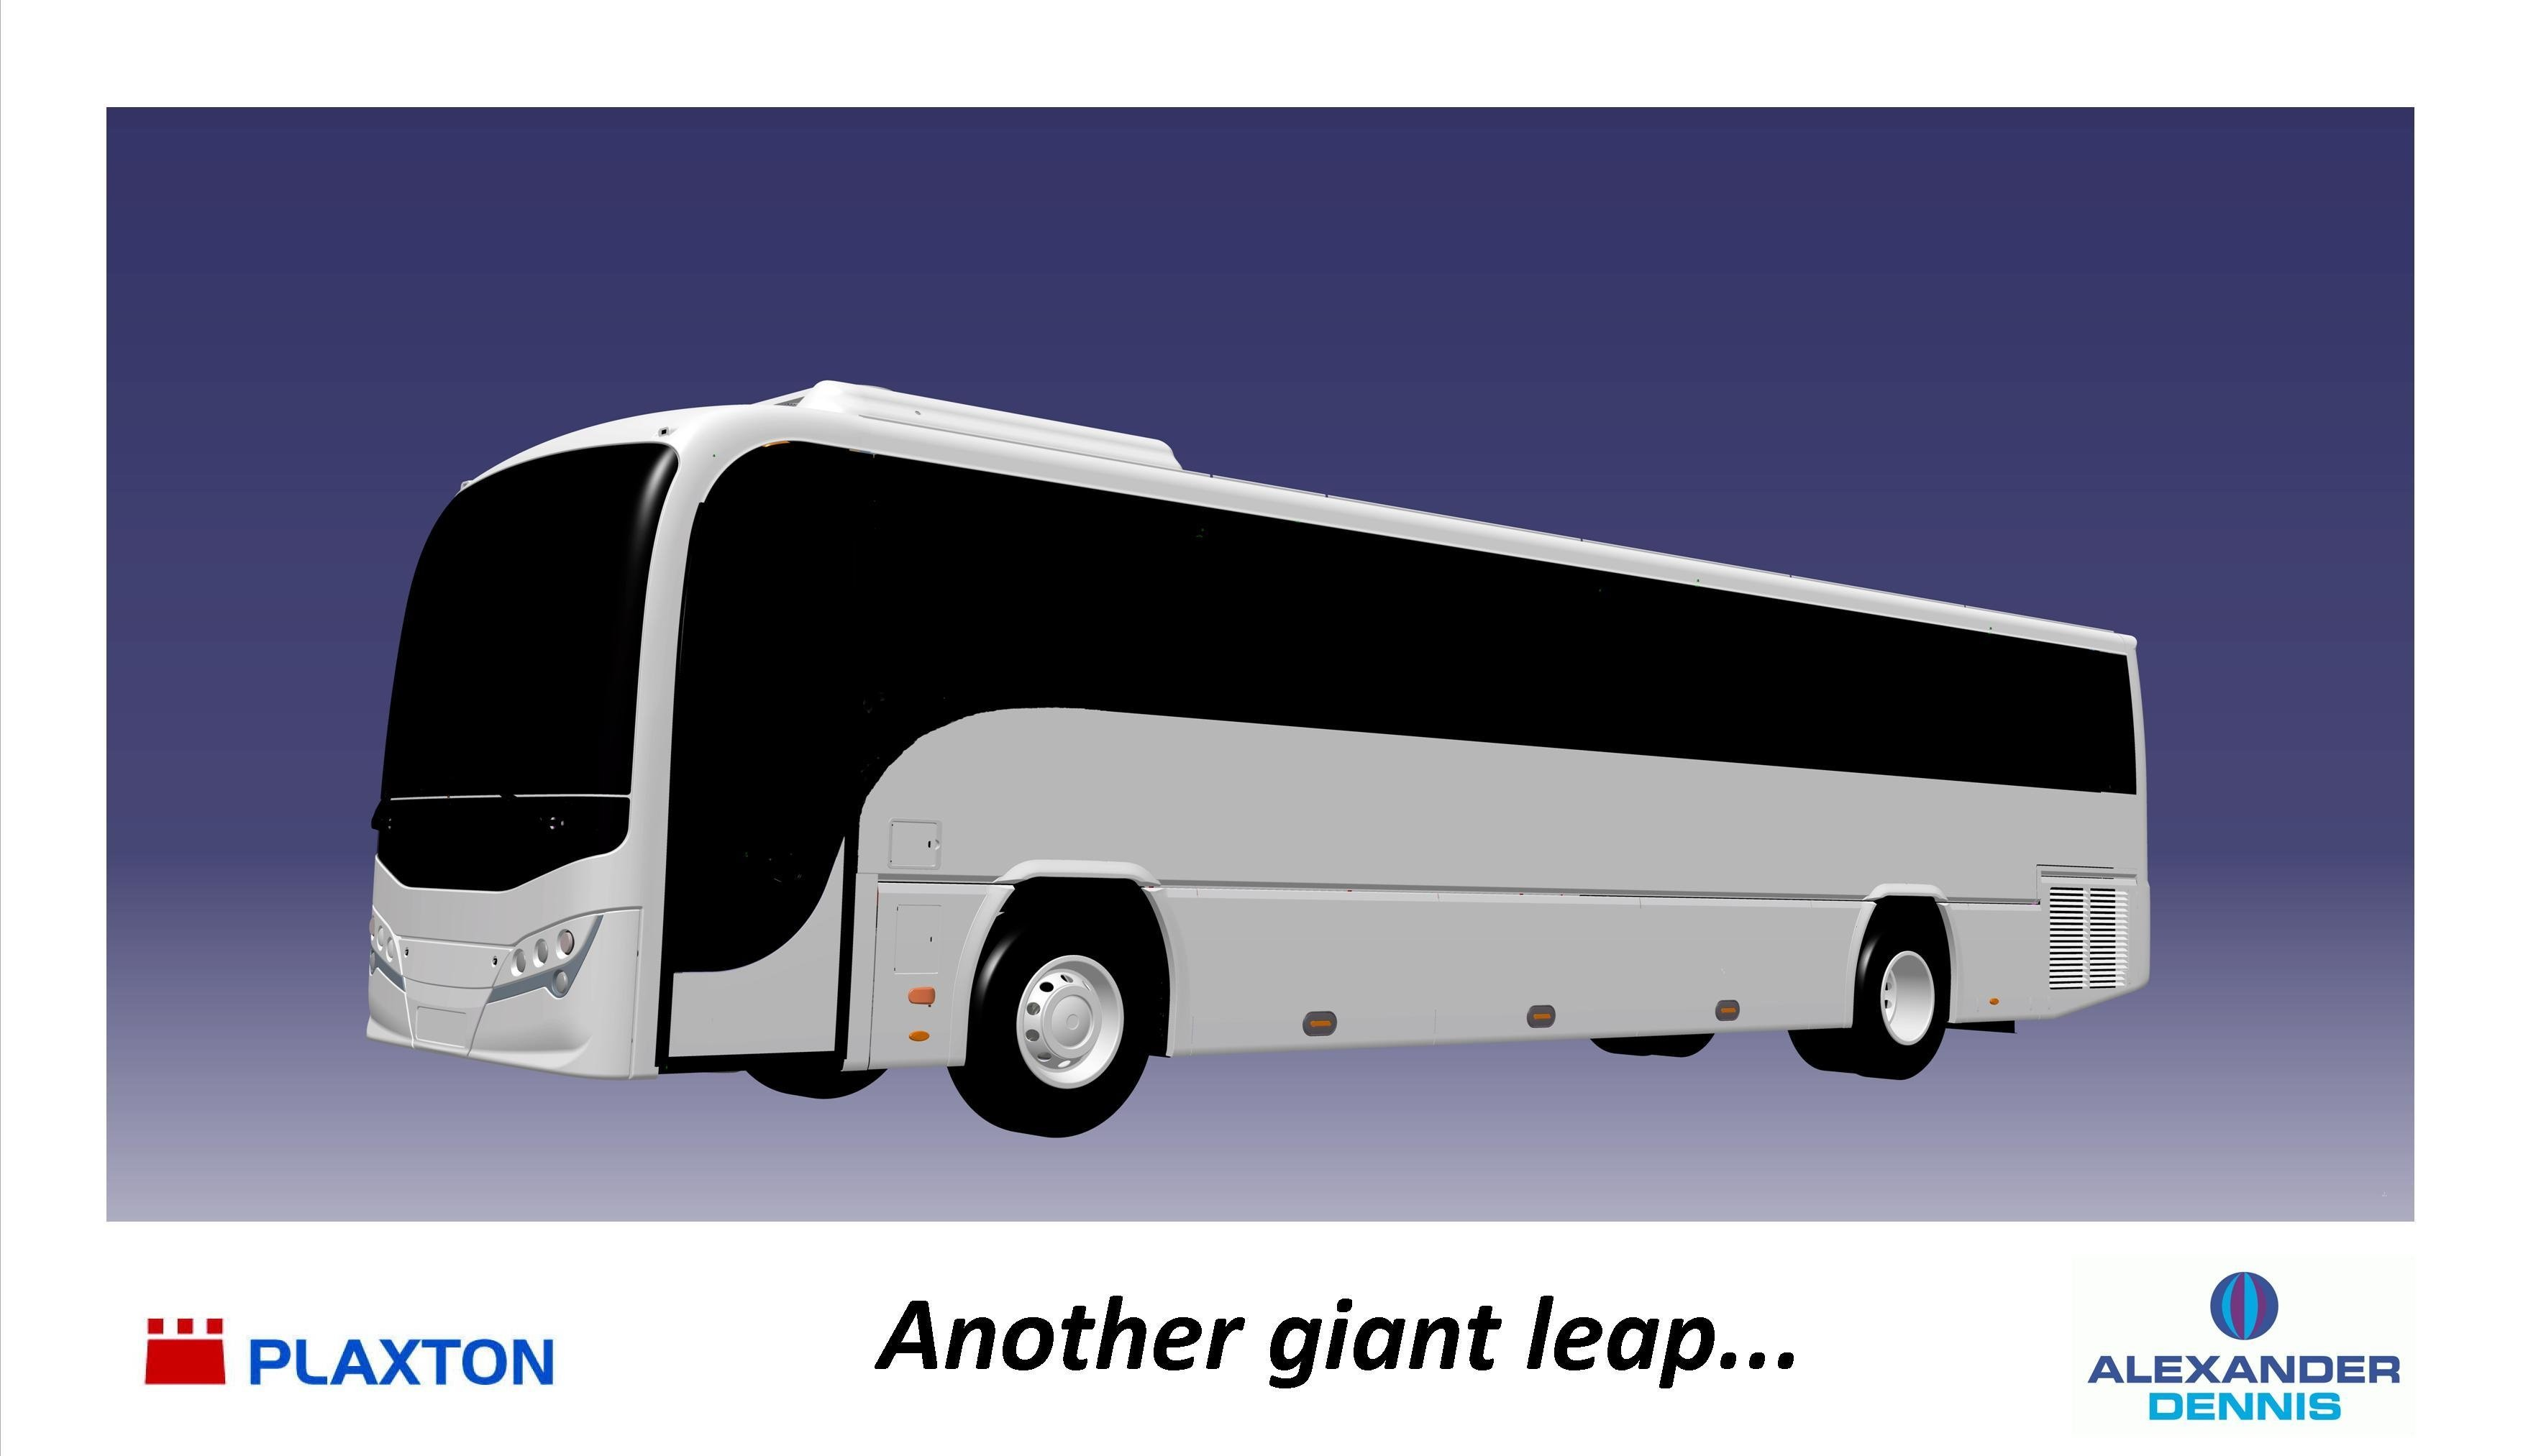 Plaxton's Profile successor - as yet unnamed - will be offered on Volvo B9R and B8R chassis. Image credit: Plaxton ltd.